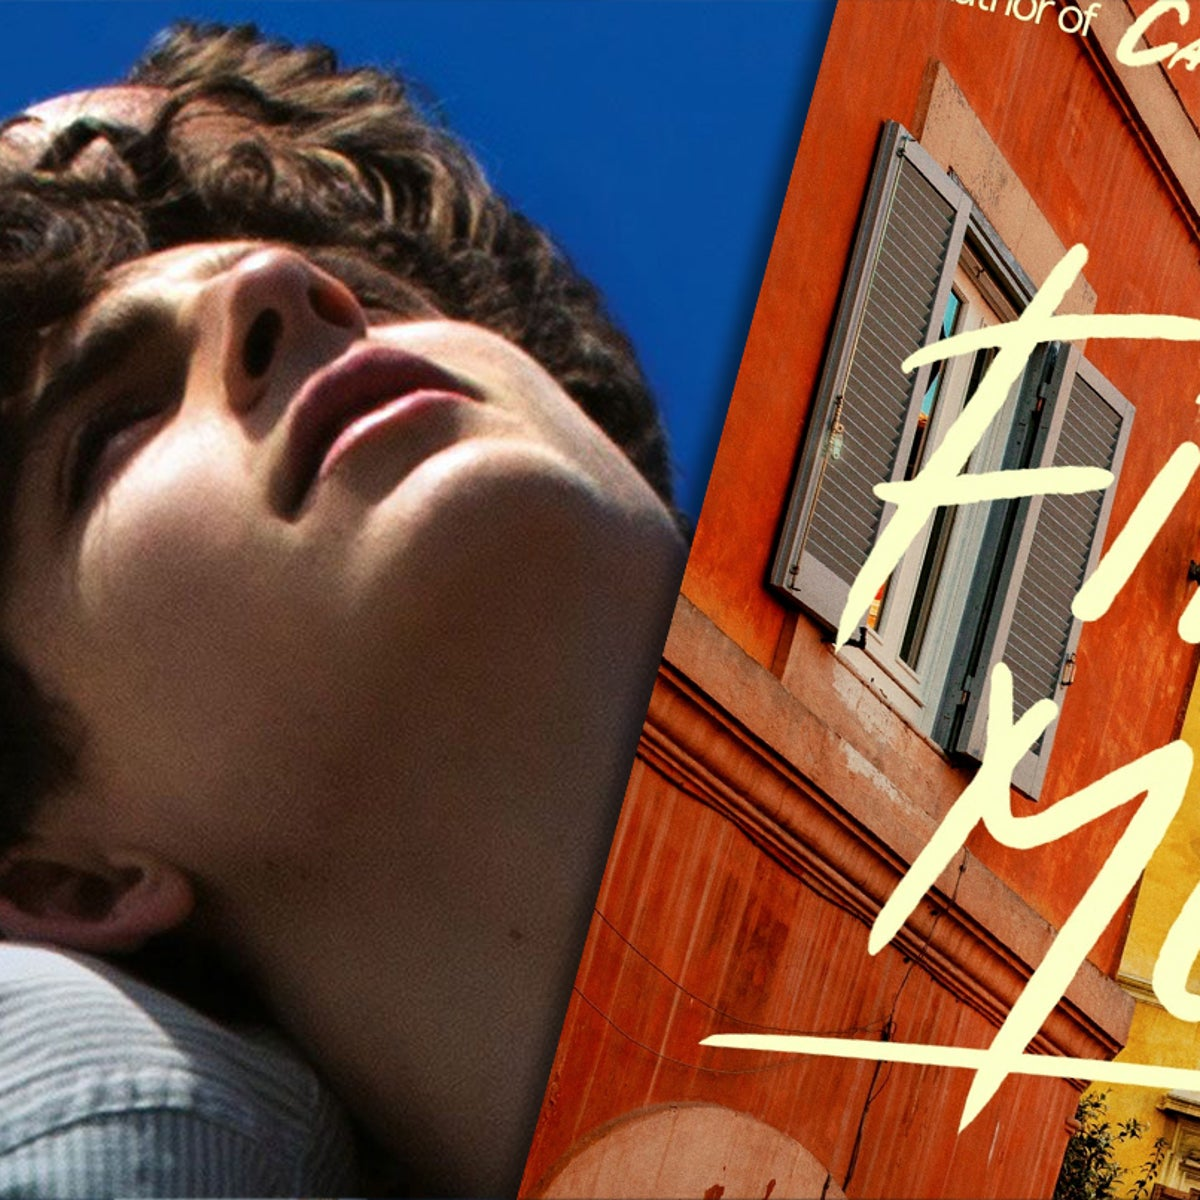 Timothée Chalamet and Armie Hammer in 'Call Me by Your Name,' left, and the cover of Aciman's new book 'Find Me.'